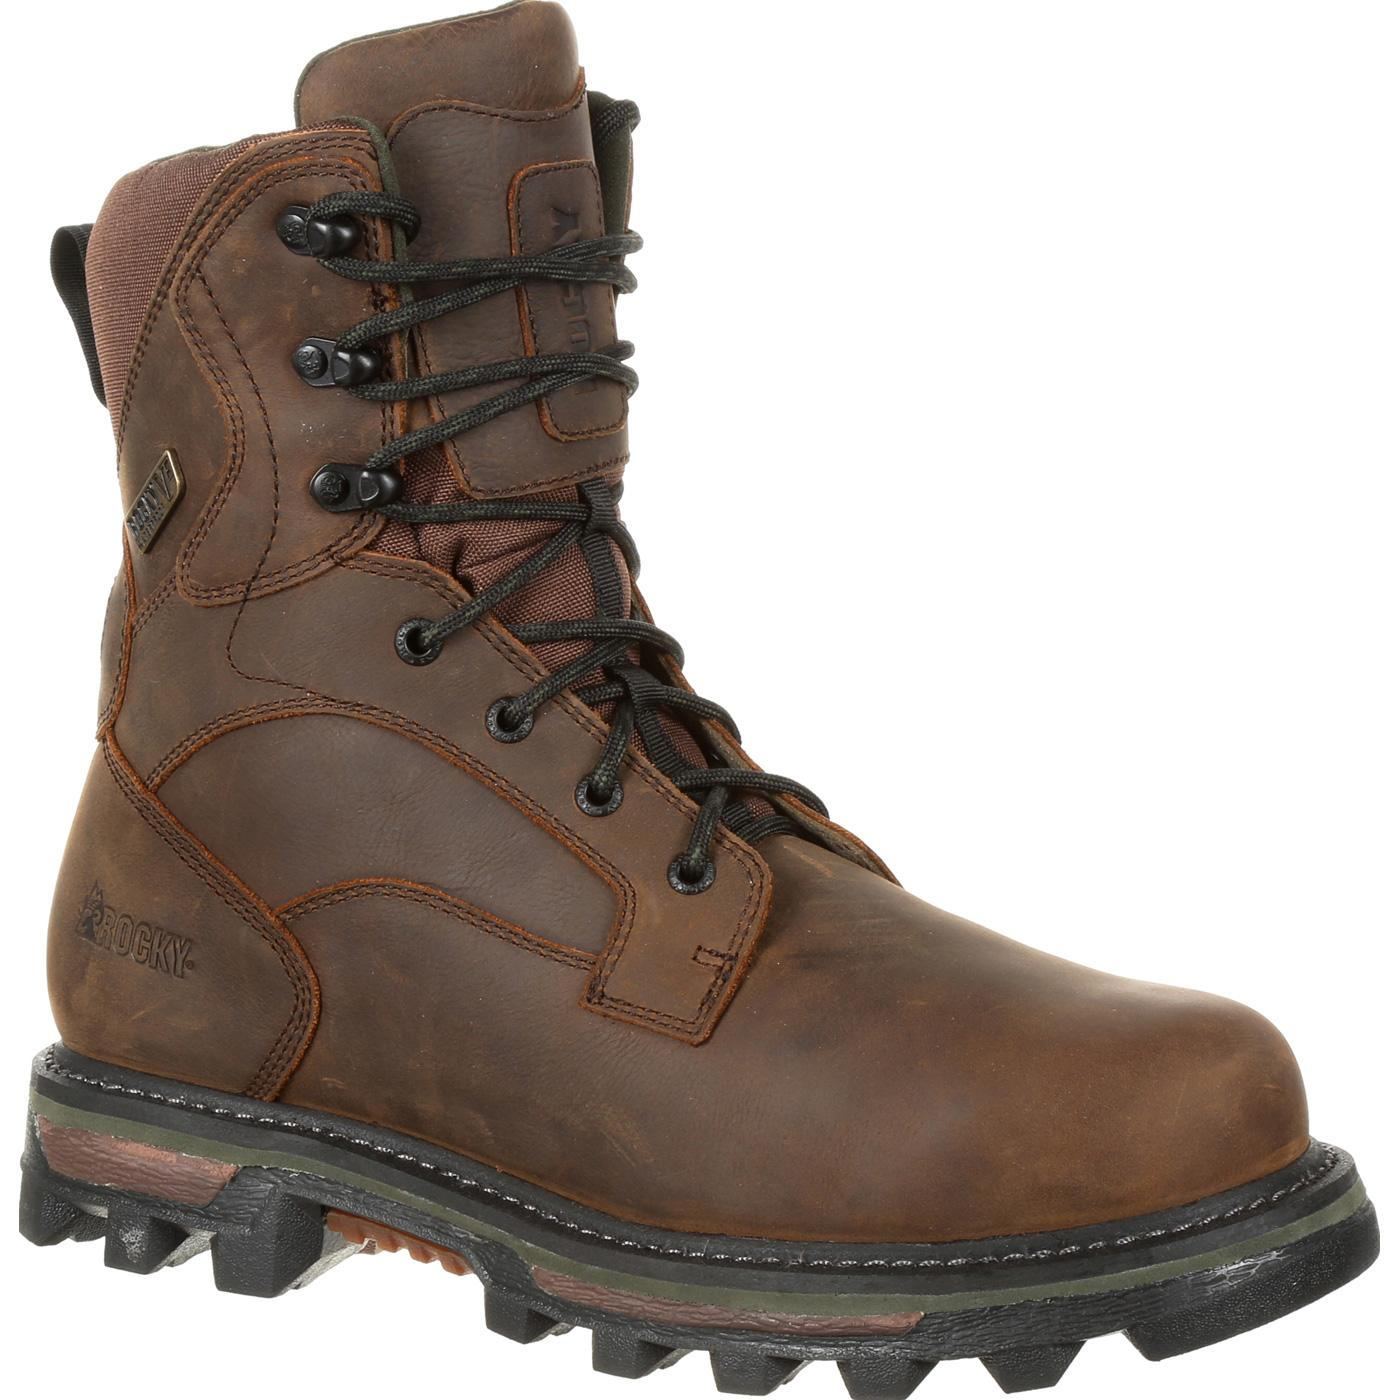 ec00d2b7c21 Details about Rocky BearClaw FX 400G Insulated Waterproof Outdoor Boot